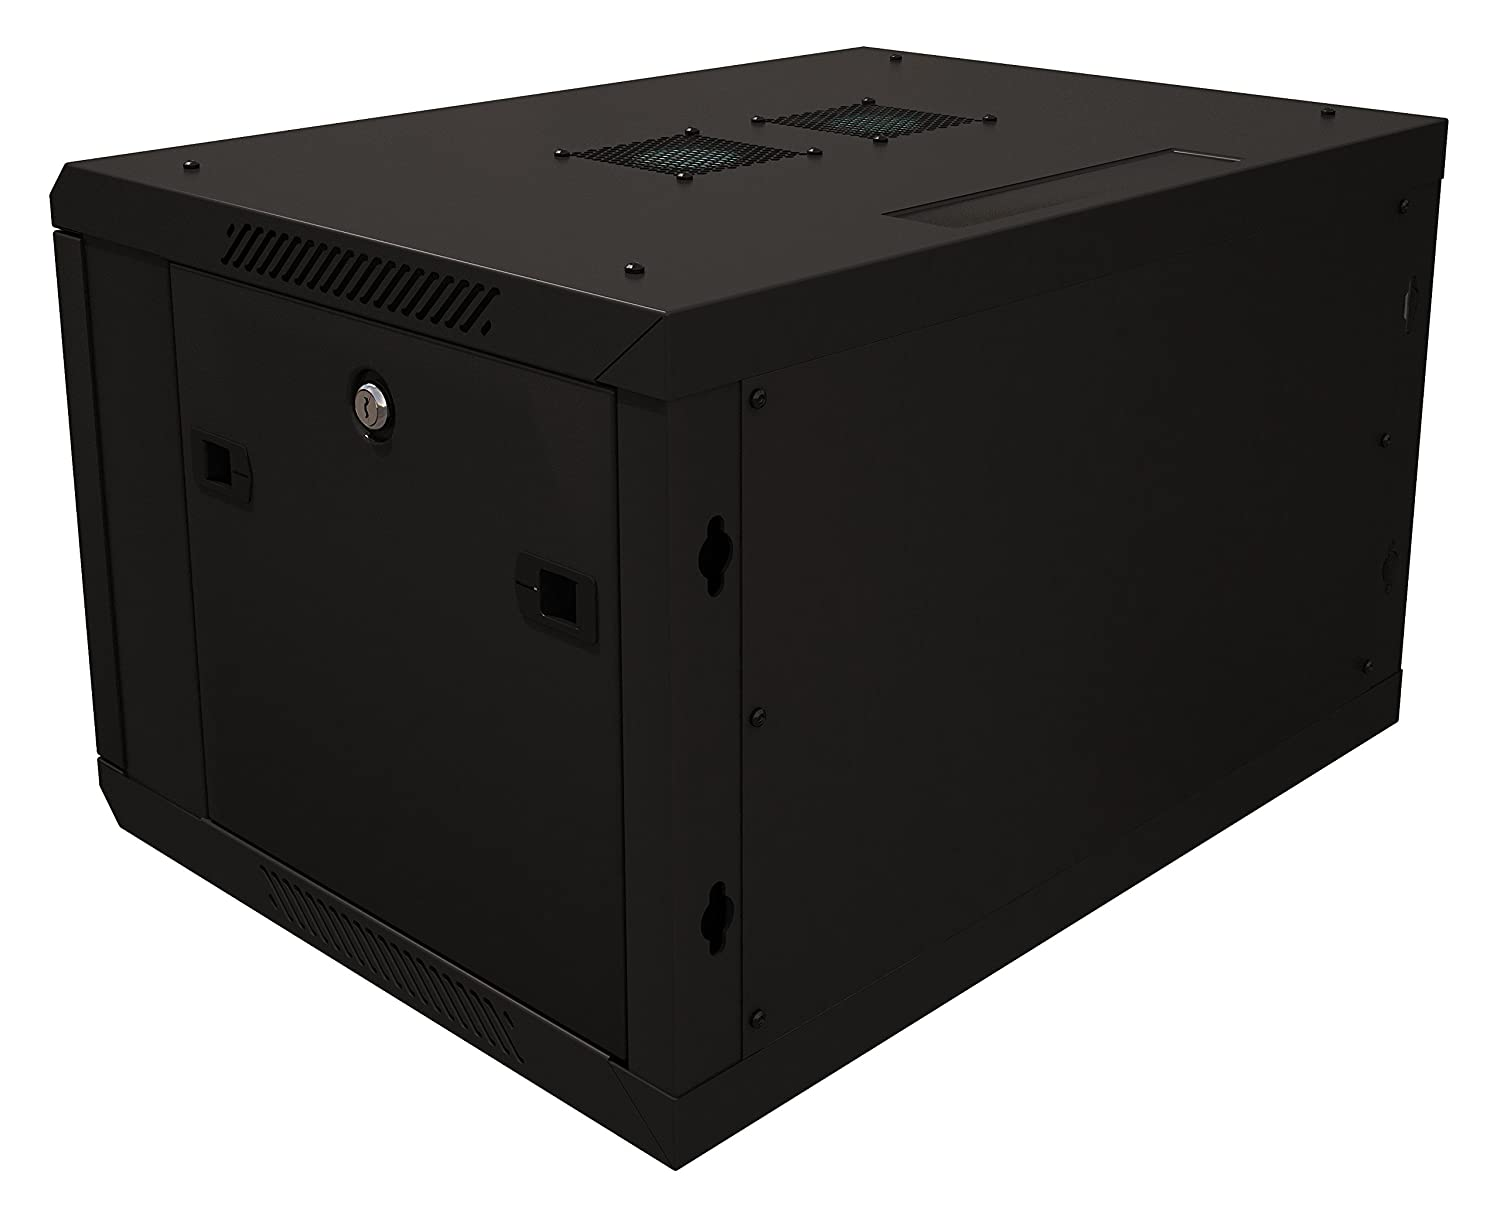 Extrem Amazon.com: Server Rack Cabinet - 6U 19